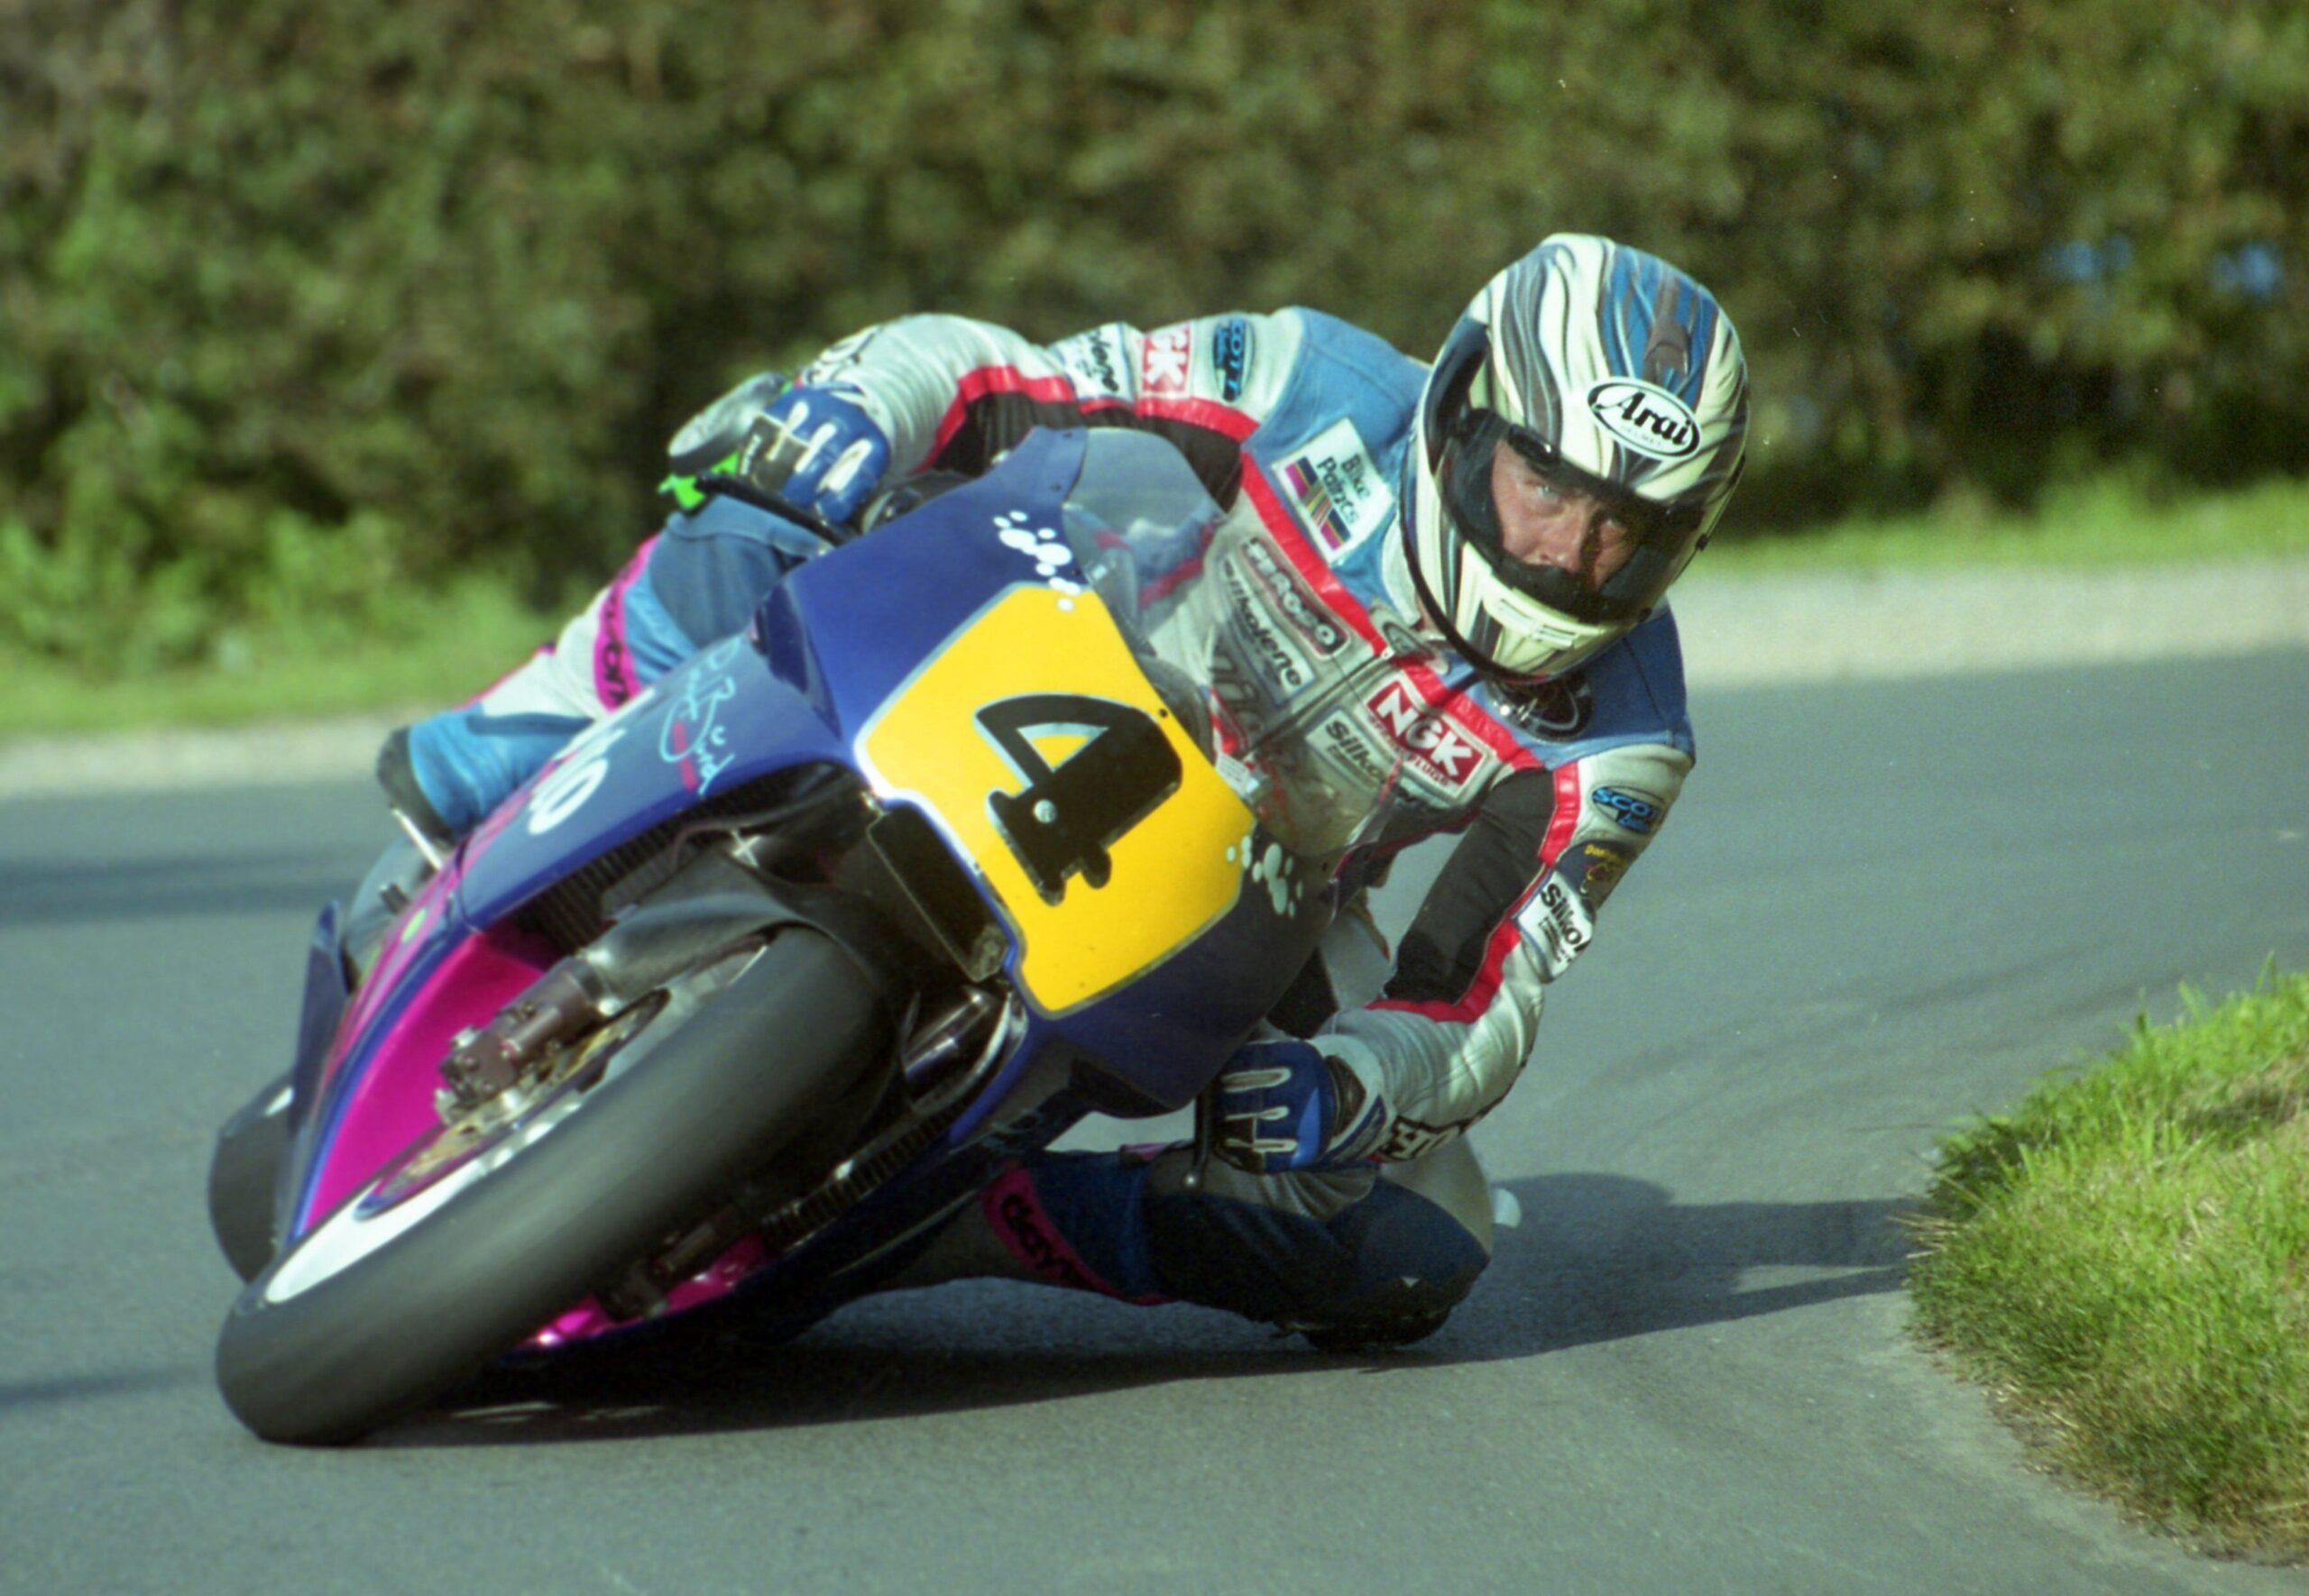 23 Times TT Winner, 99 Gold Cup Victor McGuinness Set For Oliver's Mount, Scarborough Return